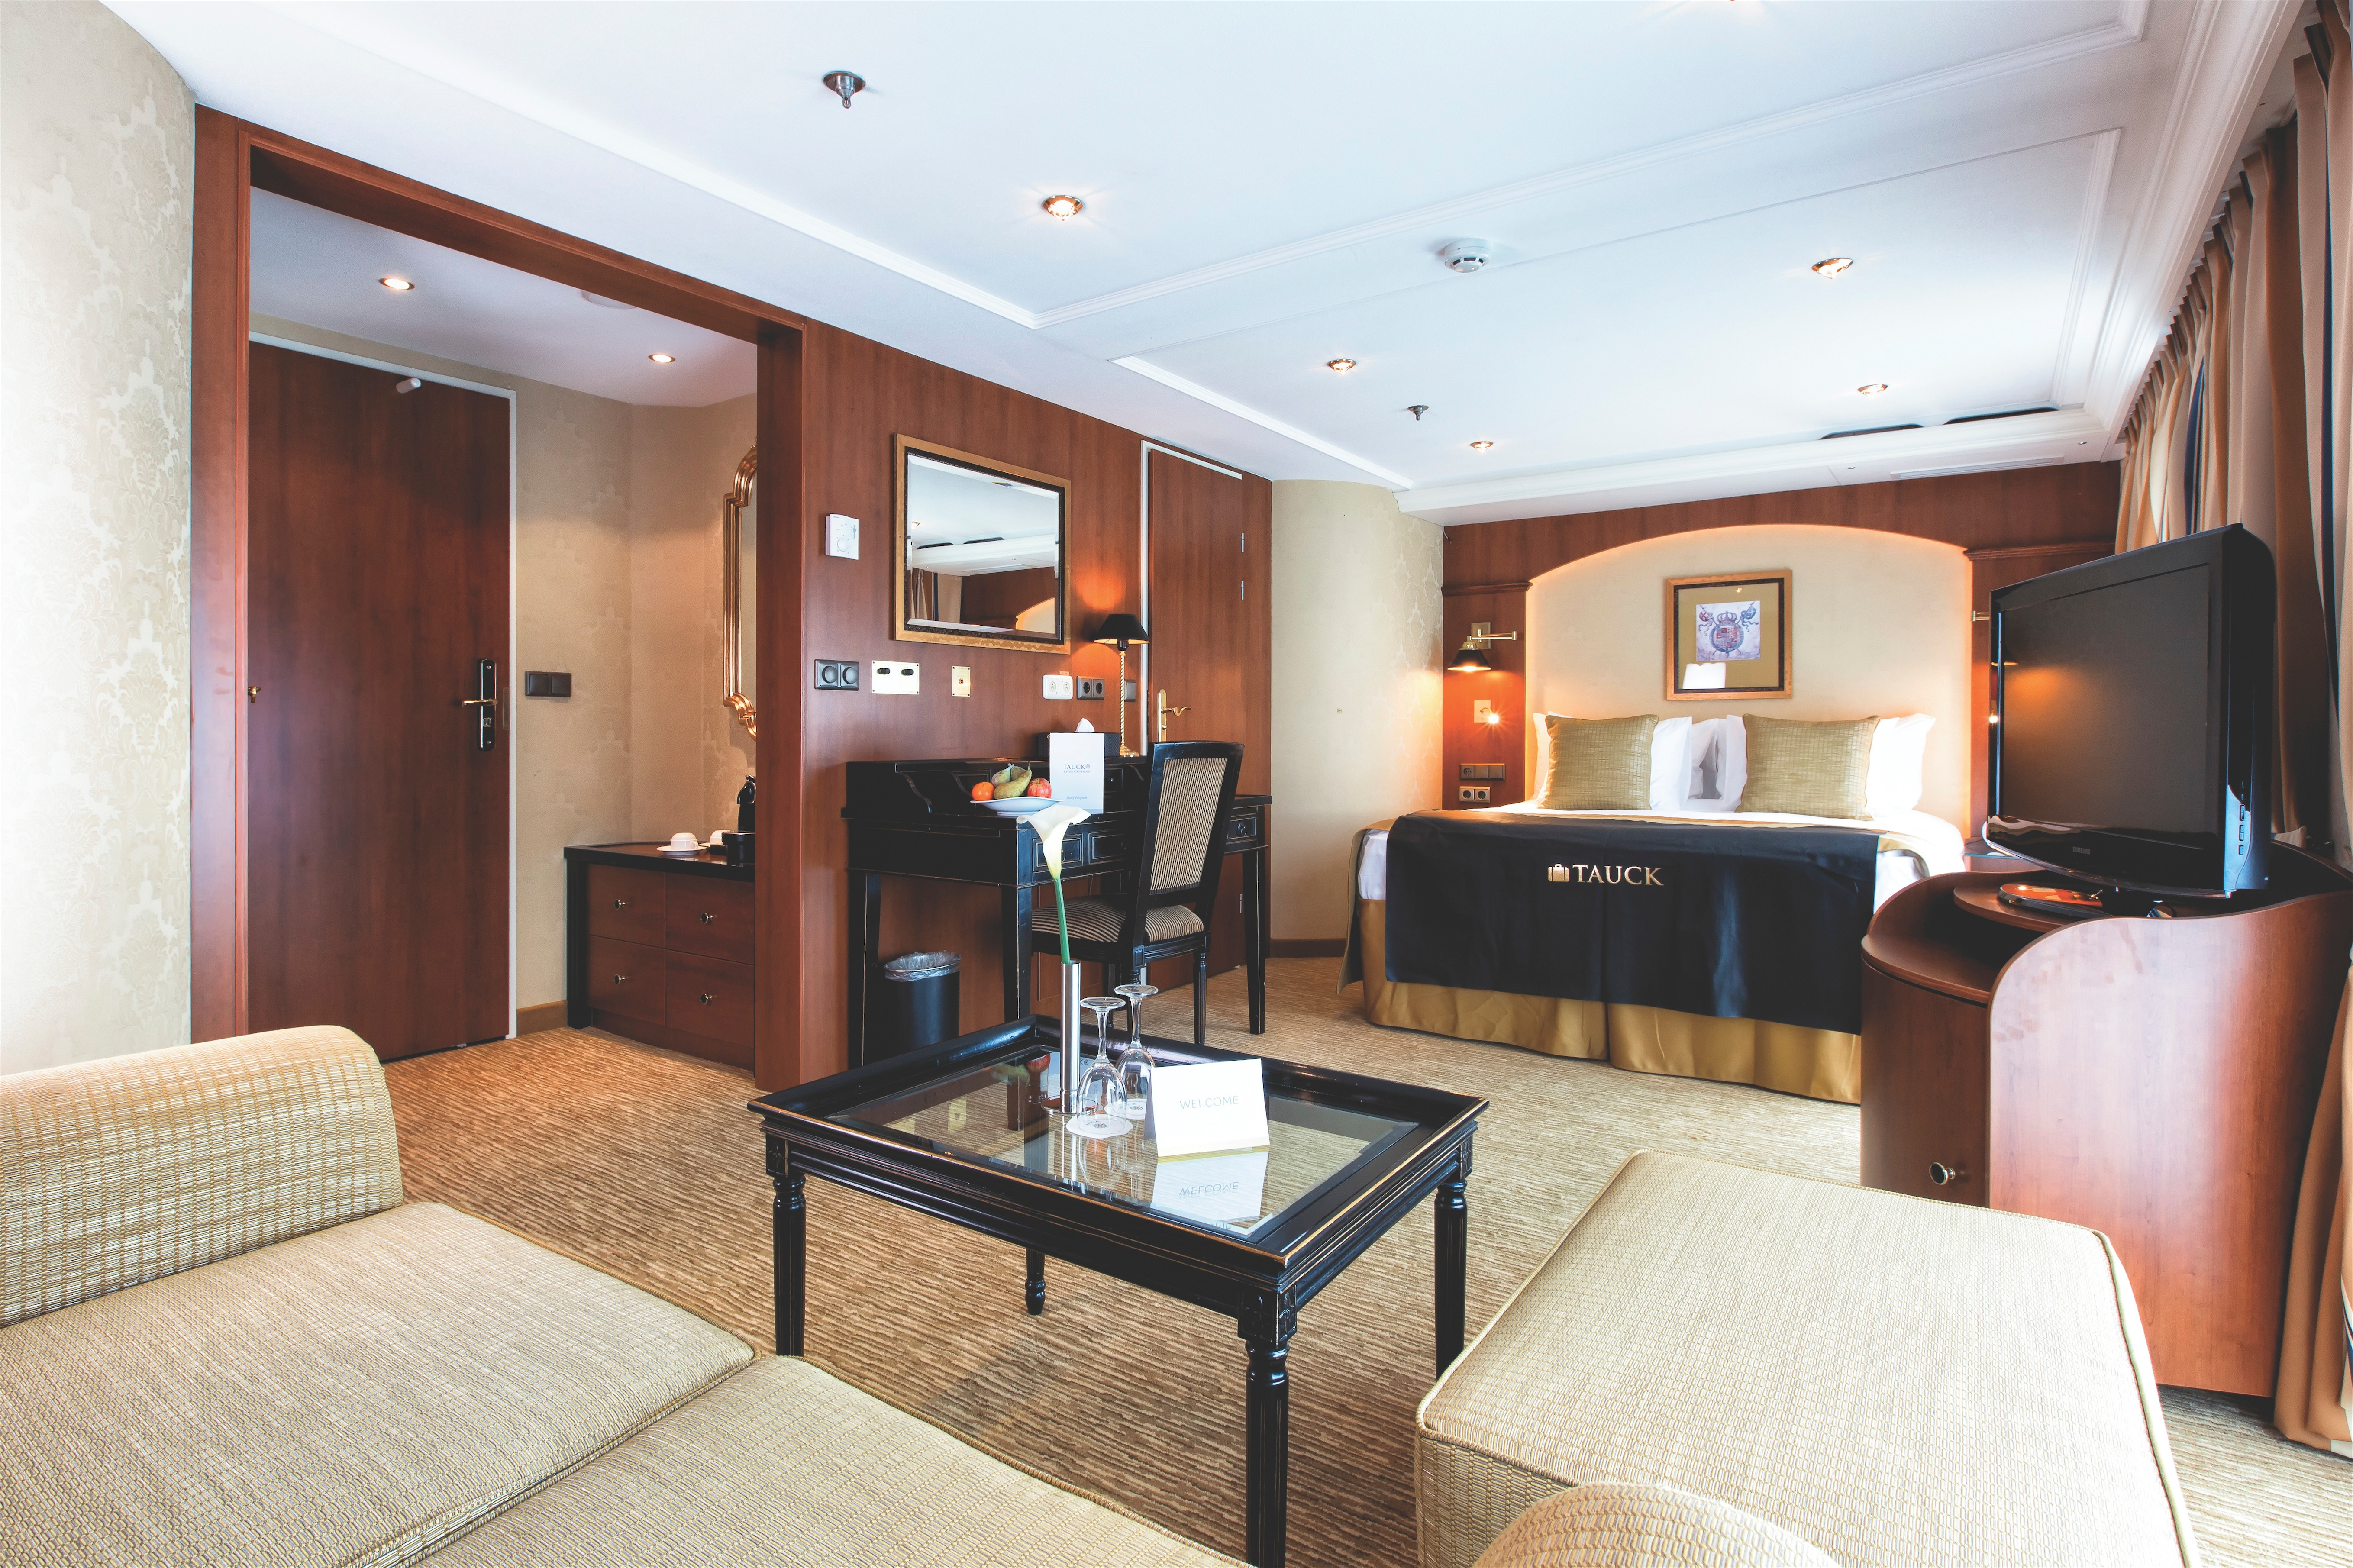 Tauck Jewel Class Accommodation Category 7 Suite 1.jpg